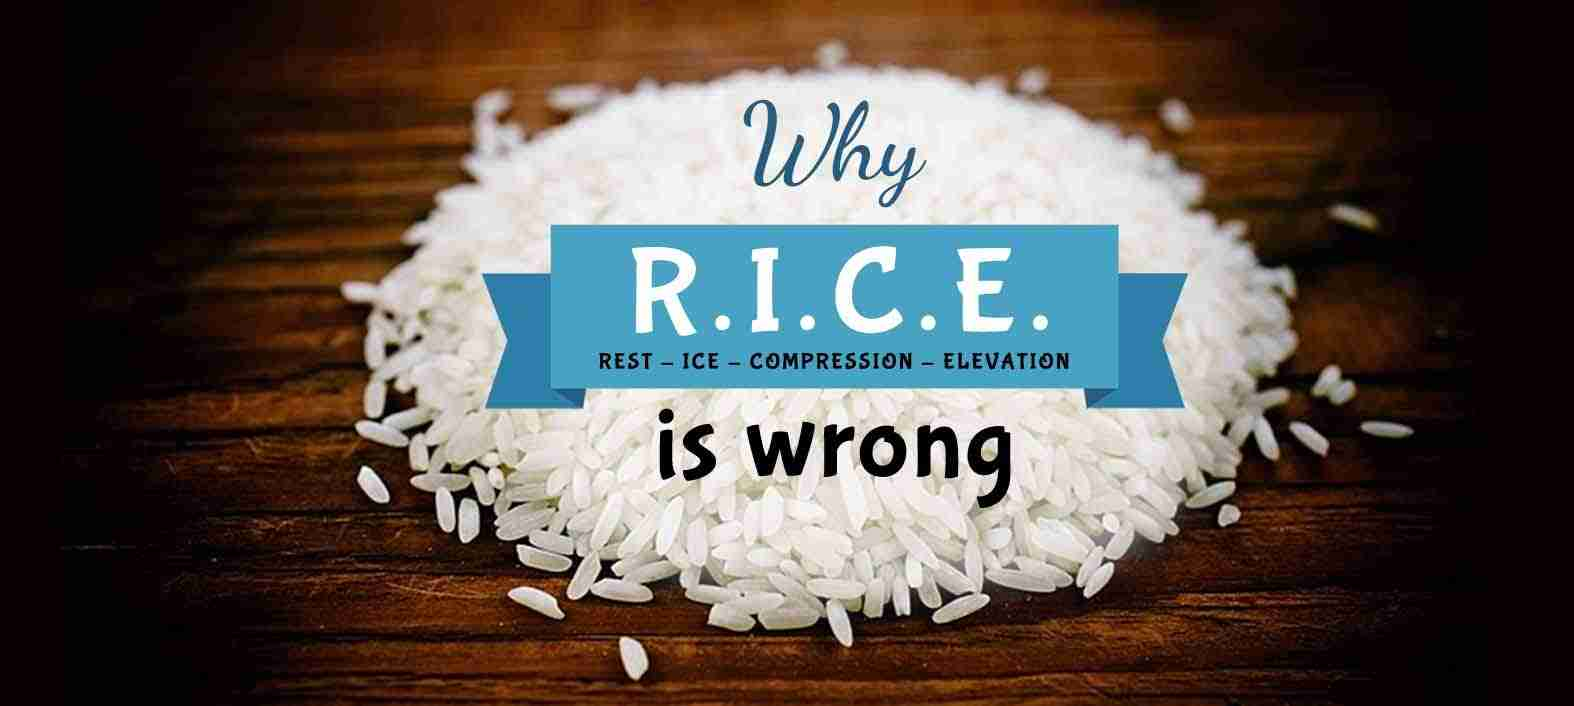 Rest Ice Compression Elevation – is Wrong